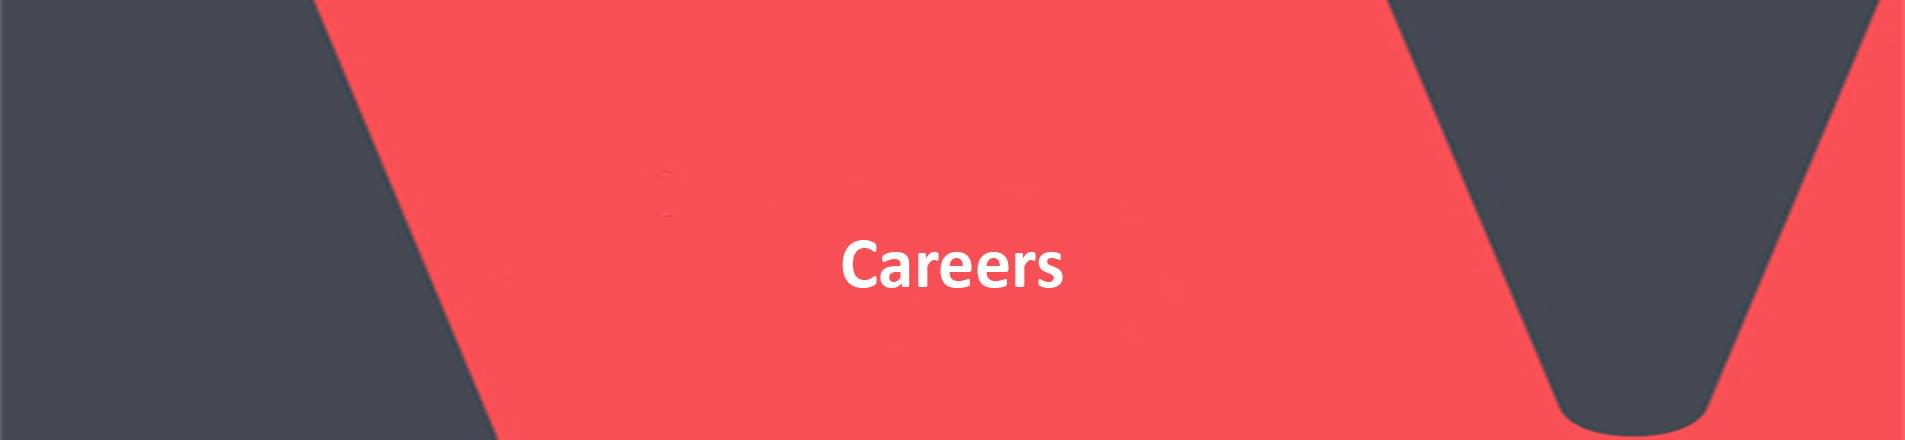 The word 'careers' on red VERCIDA background